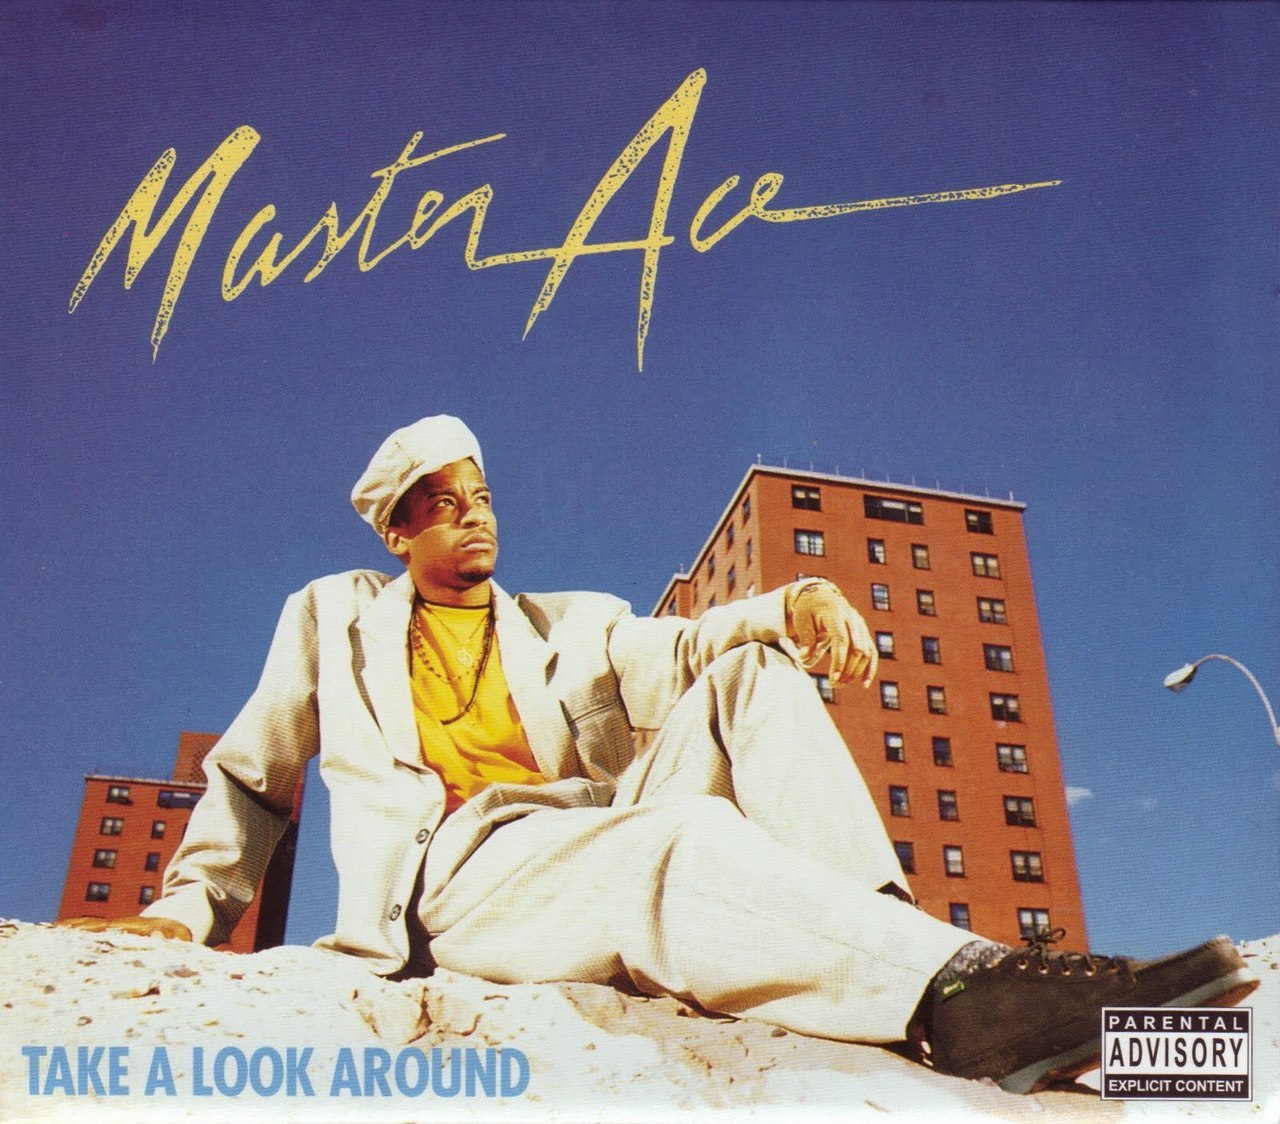 BACK IN THE DAY |7/24/90| Master Ace released his debut album, Take A Look Around, on Cold Chillin' records.